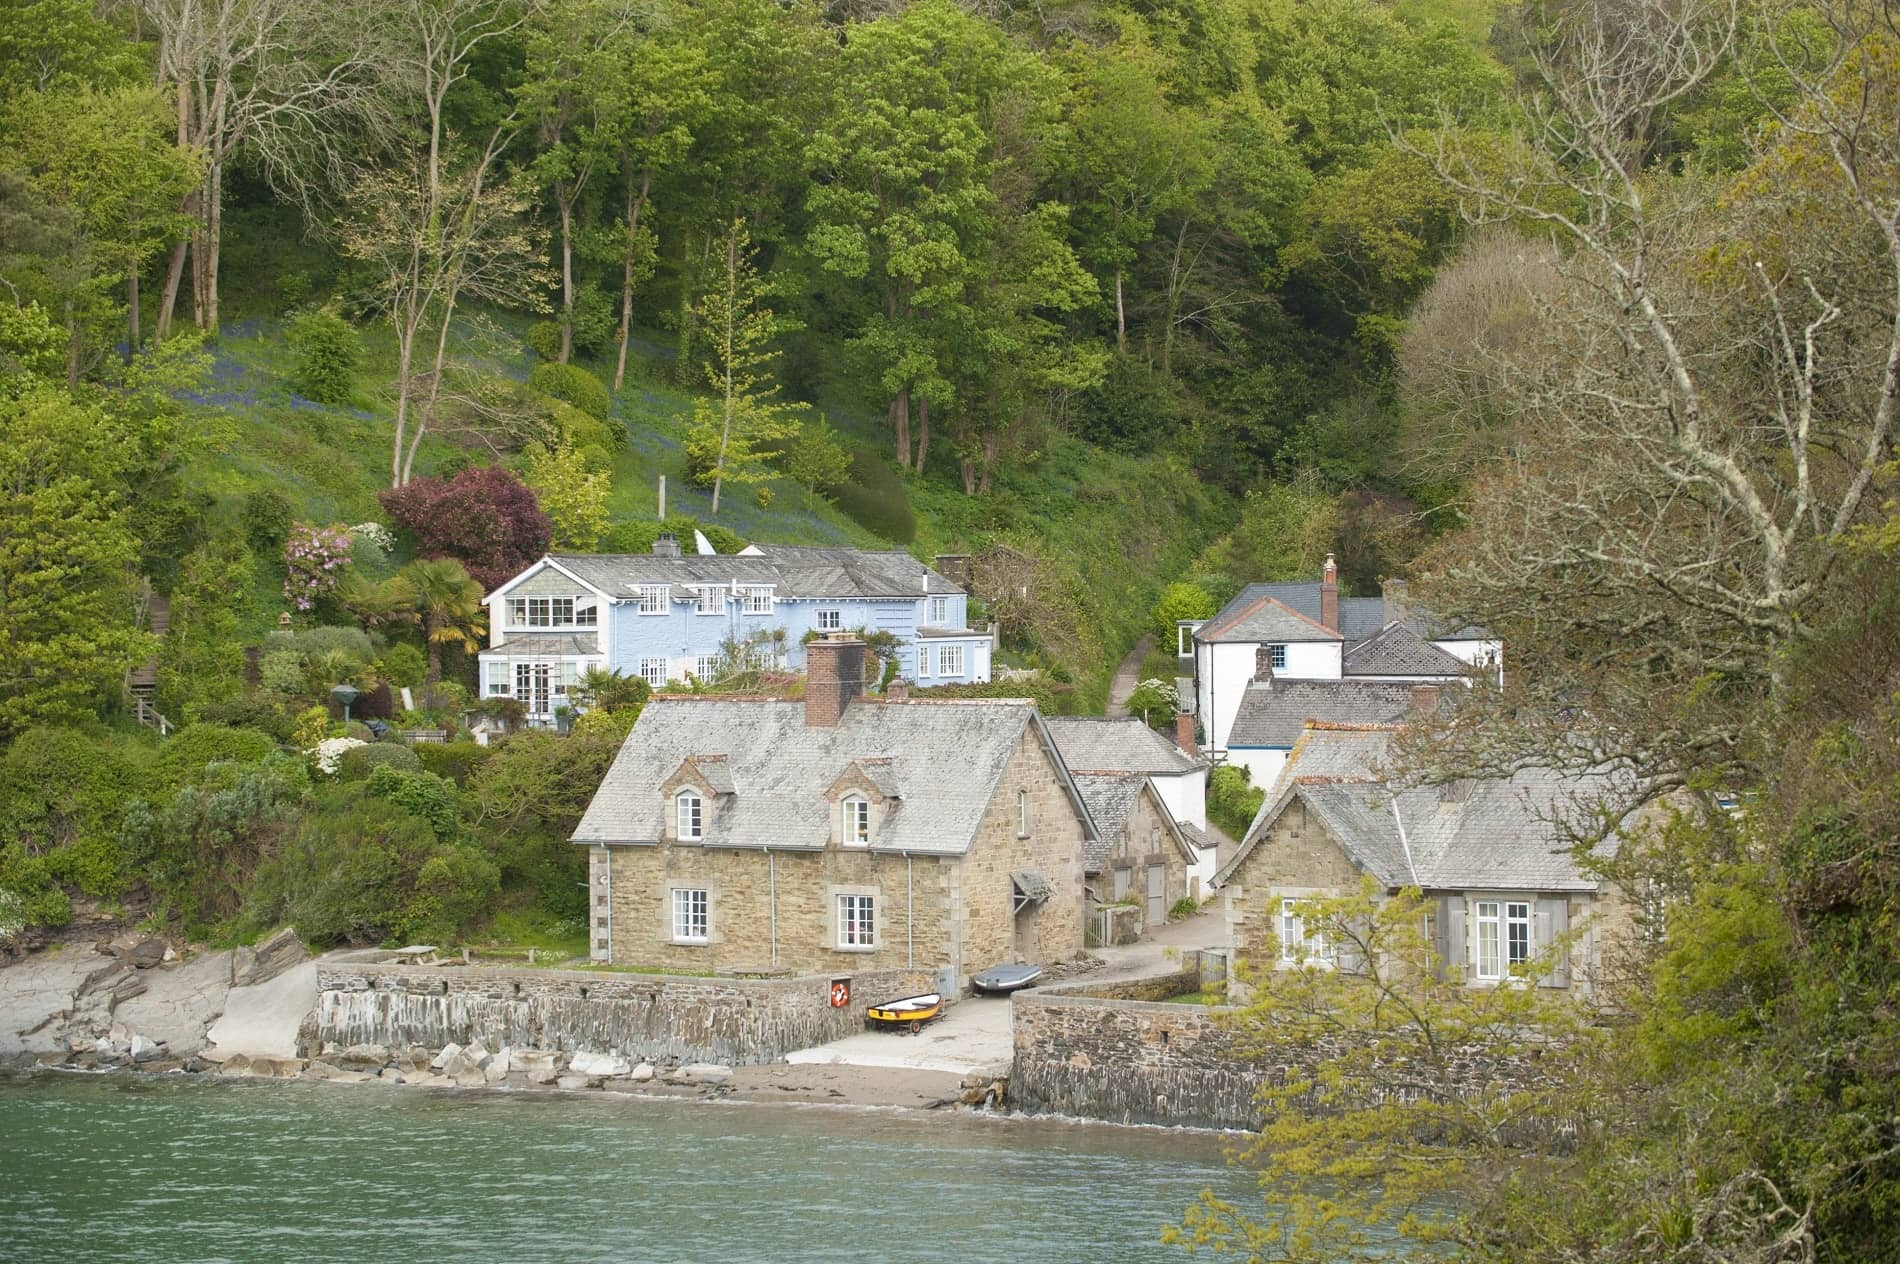 Cornish scene at the quay in North Helford